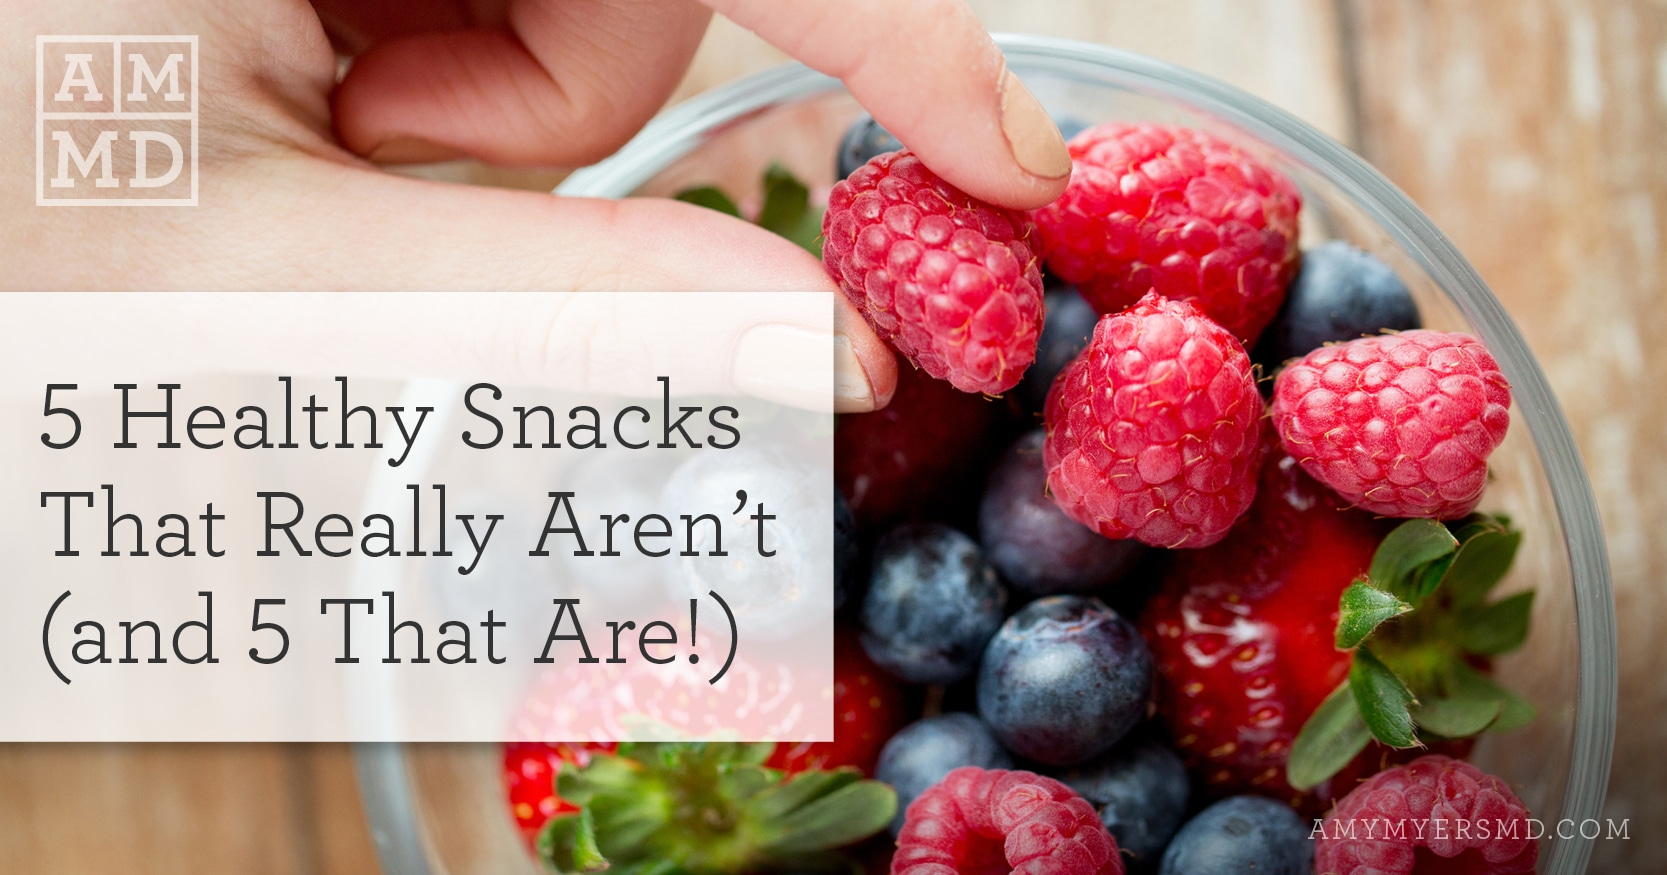 5 healthy snacks that really aren't - Bowl of Berries - Featured image - Amy Myers MD